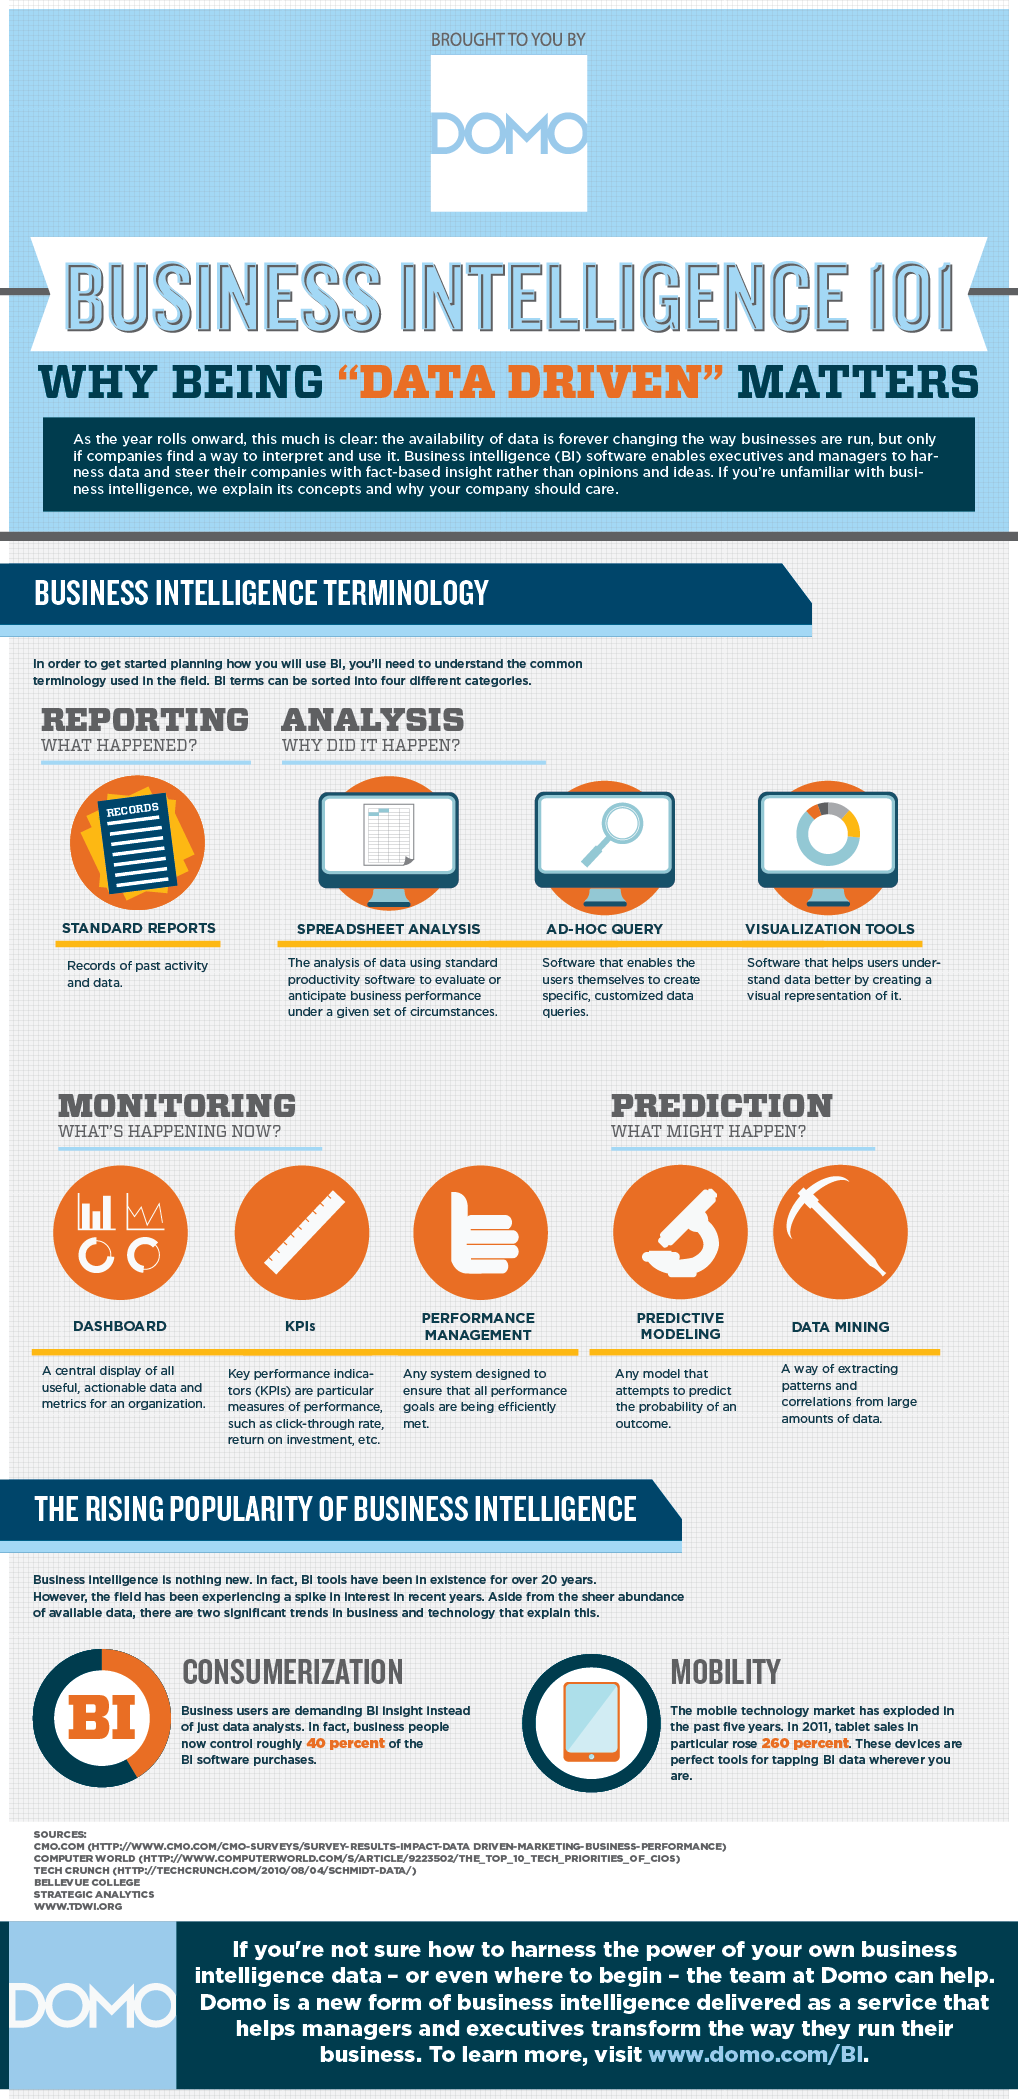 Business-Intelligence-101-infographic